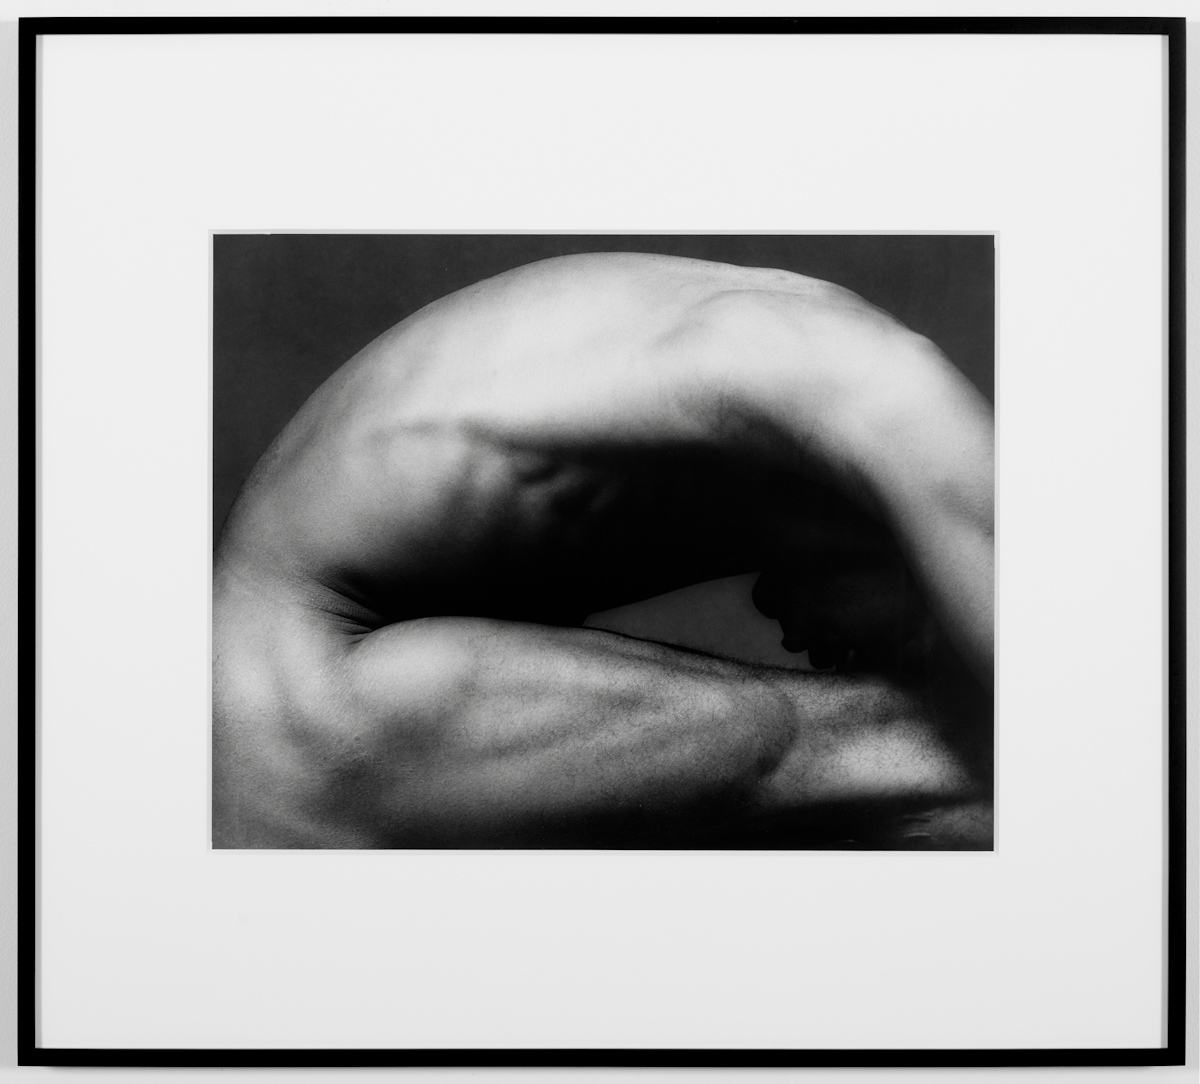 Robert Mapplethorpe, Jason